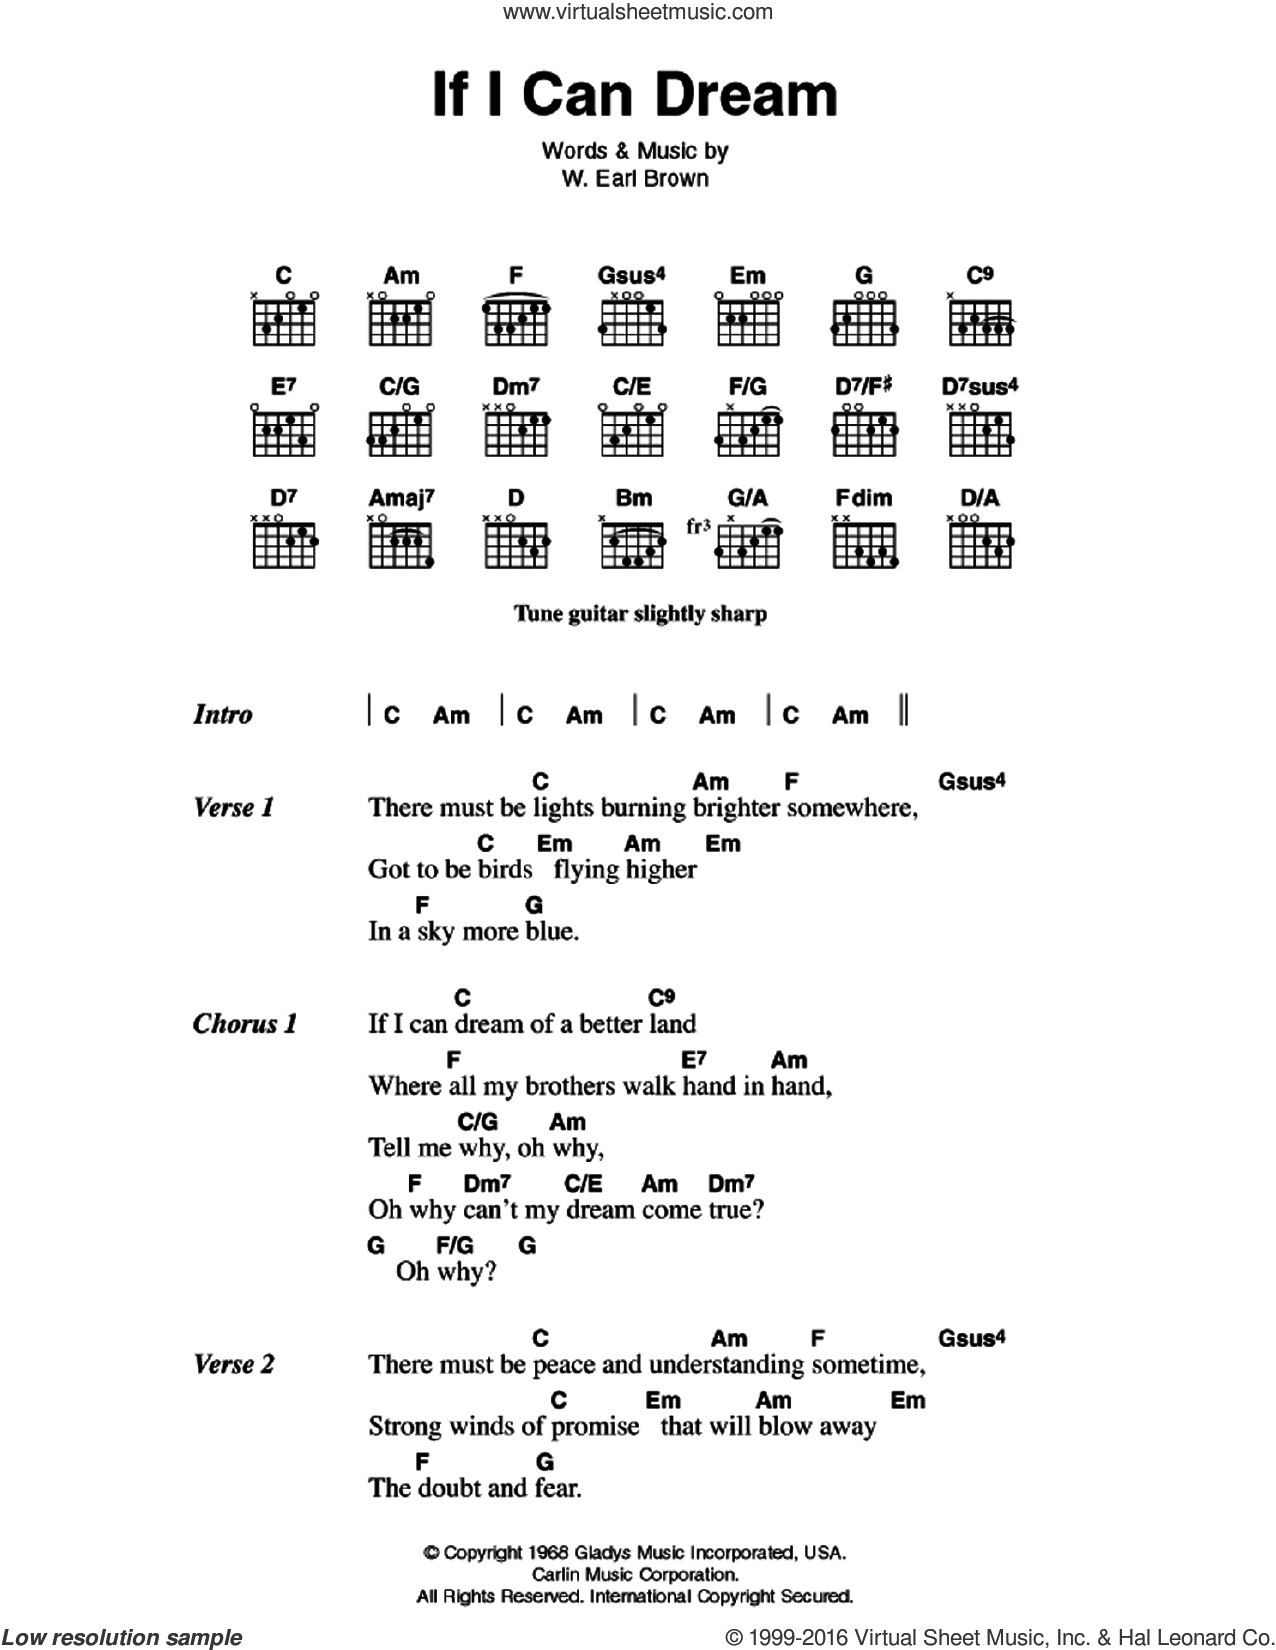 If I Can Dream sheet music for guitar (chords) by W. Earl Brown